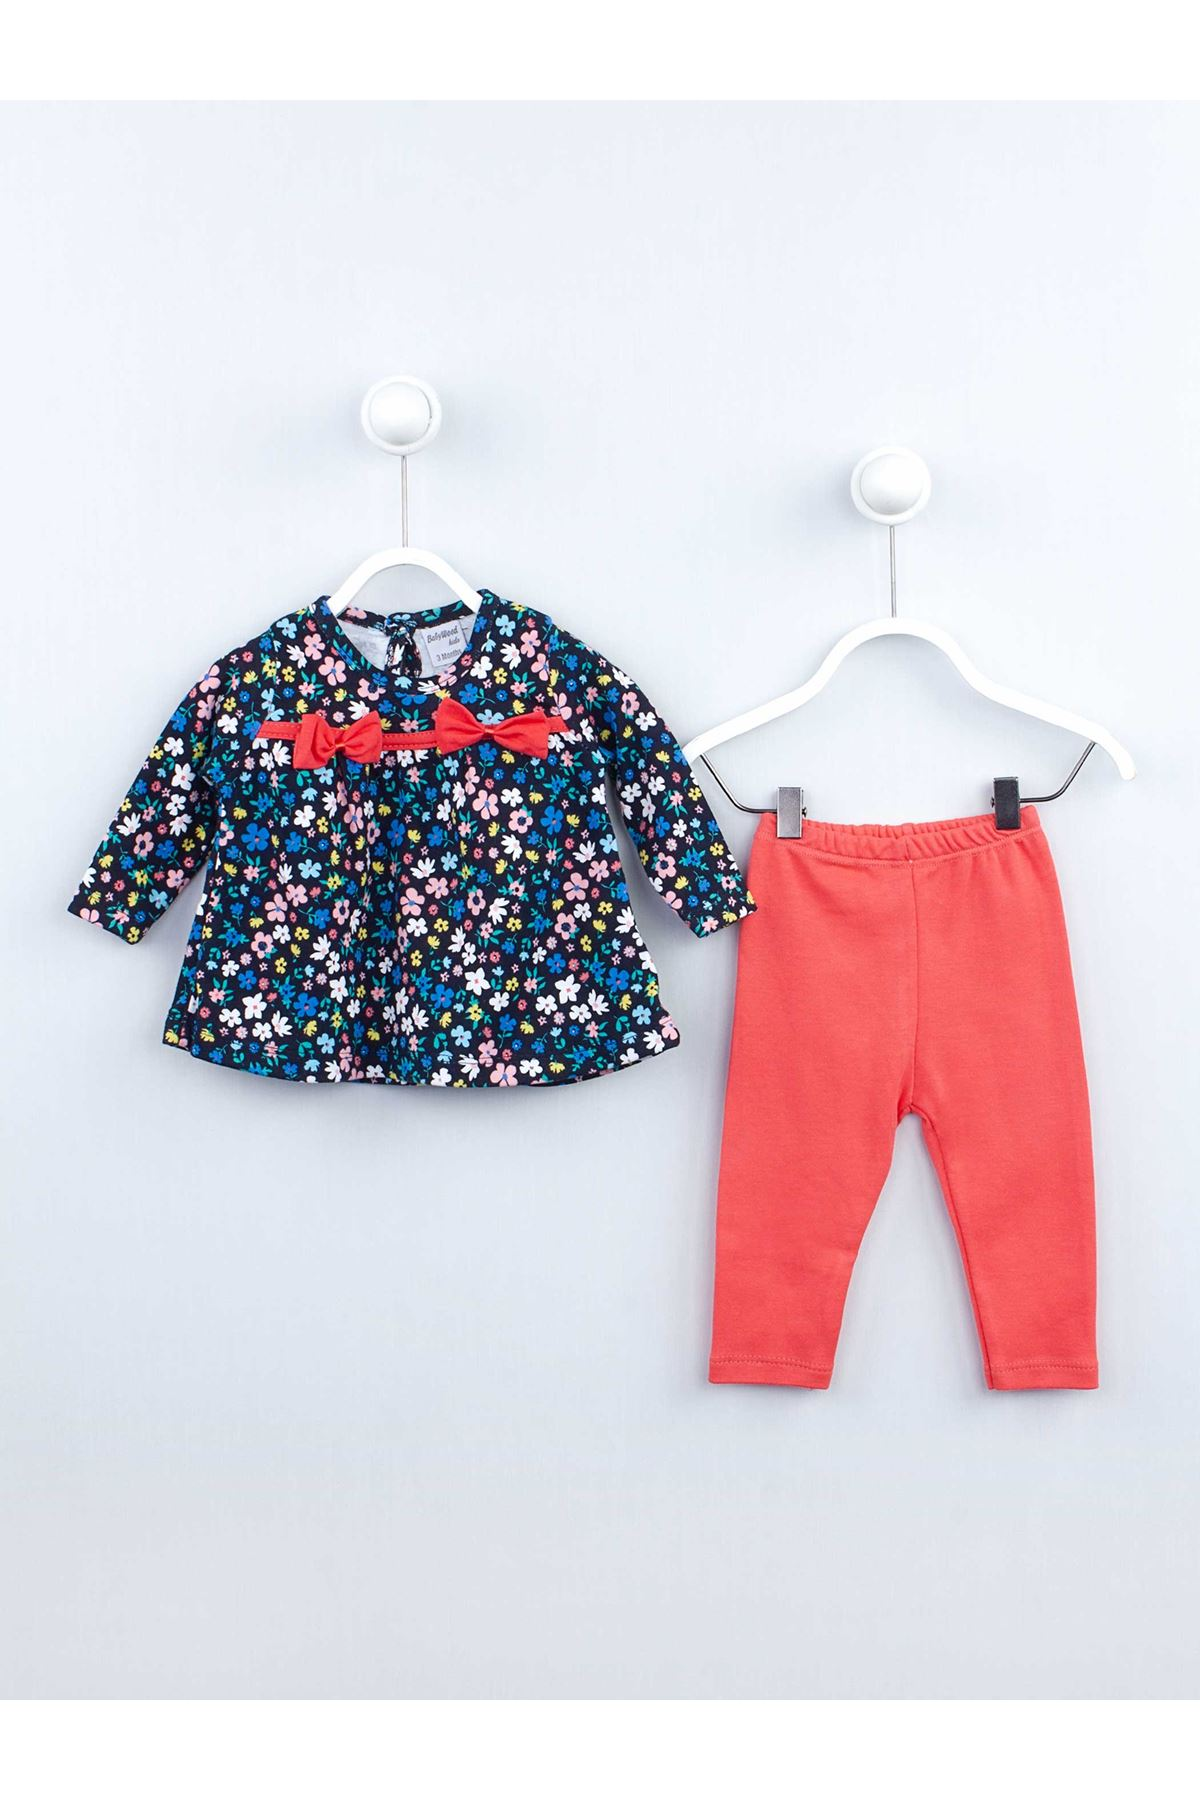 Grenadine red Baby Girl Daily 2 Piece Suit Set Cotton Daily Seasonal Casual Wear Girls Babies Suit Outfit ModeKız Baby The tights suit